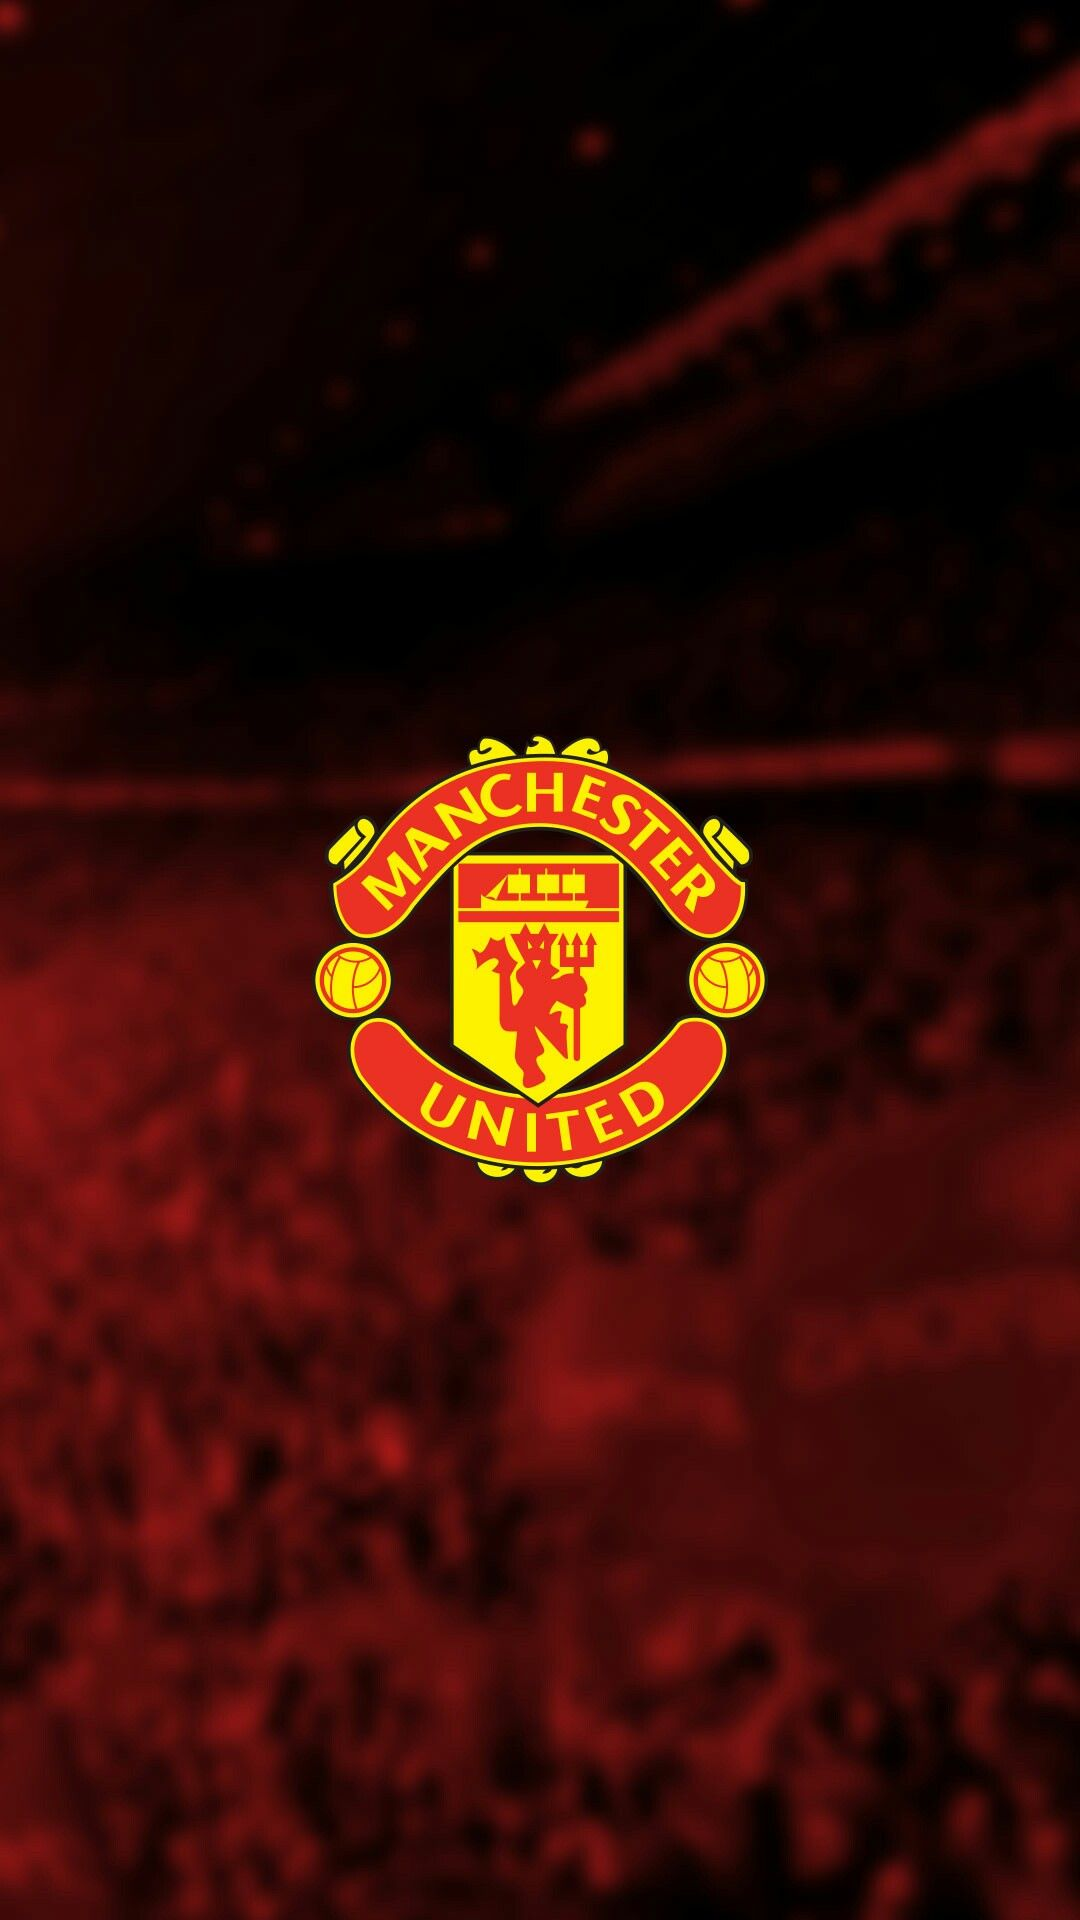 football wallpaper manchester united - photo #8